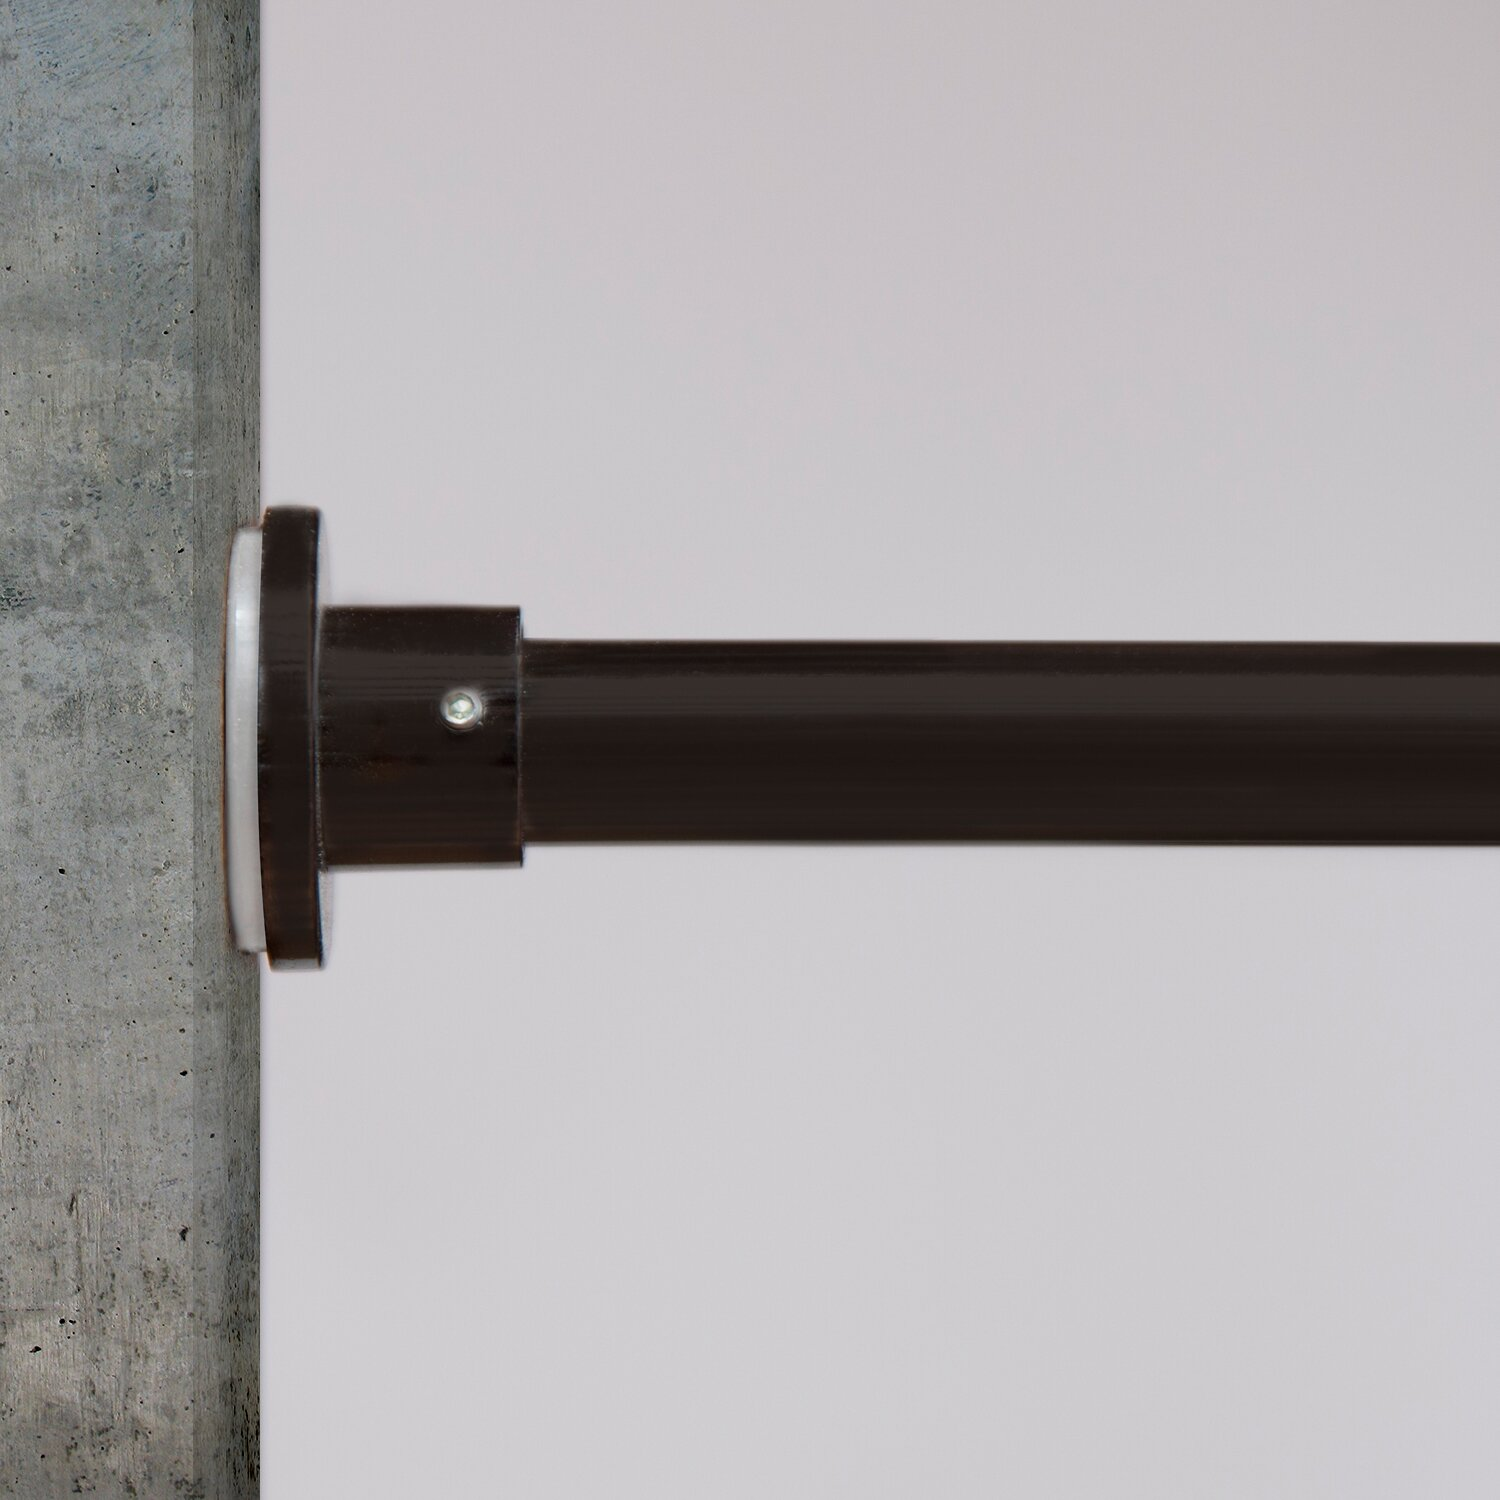 target shower tension rod instructions